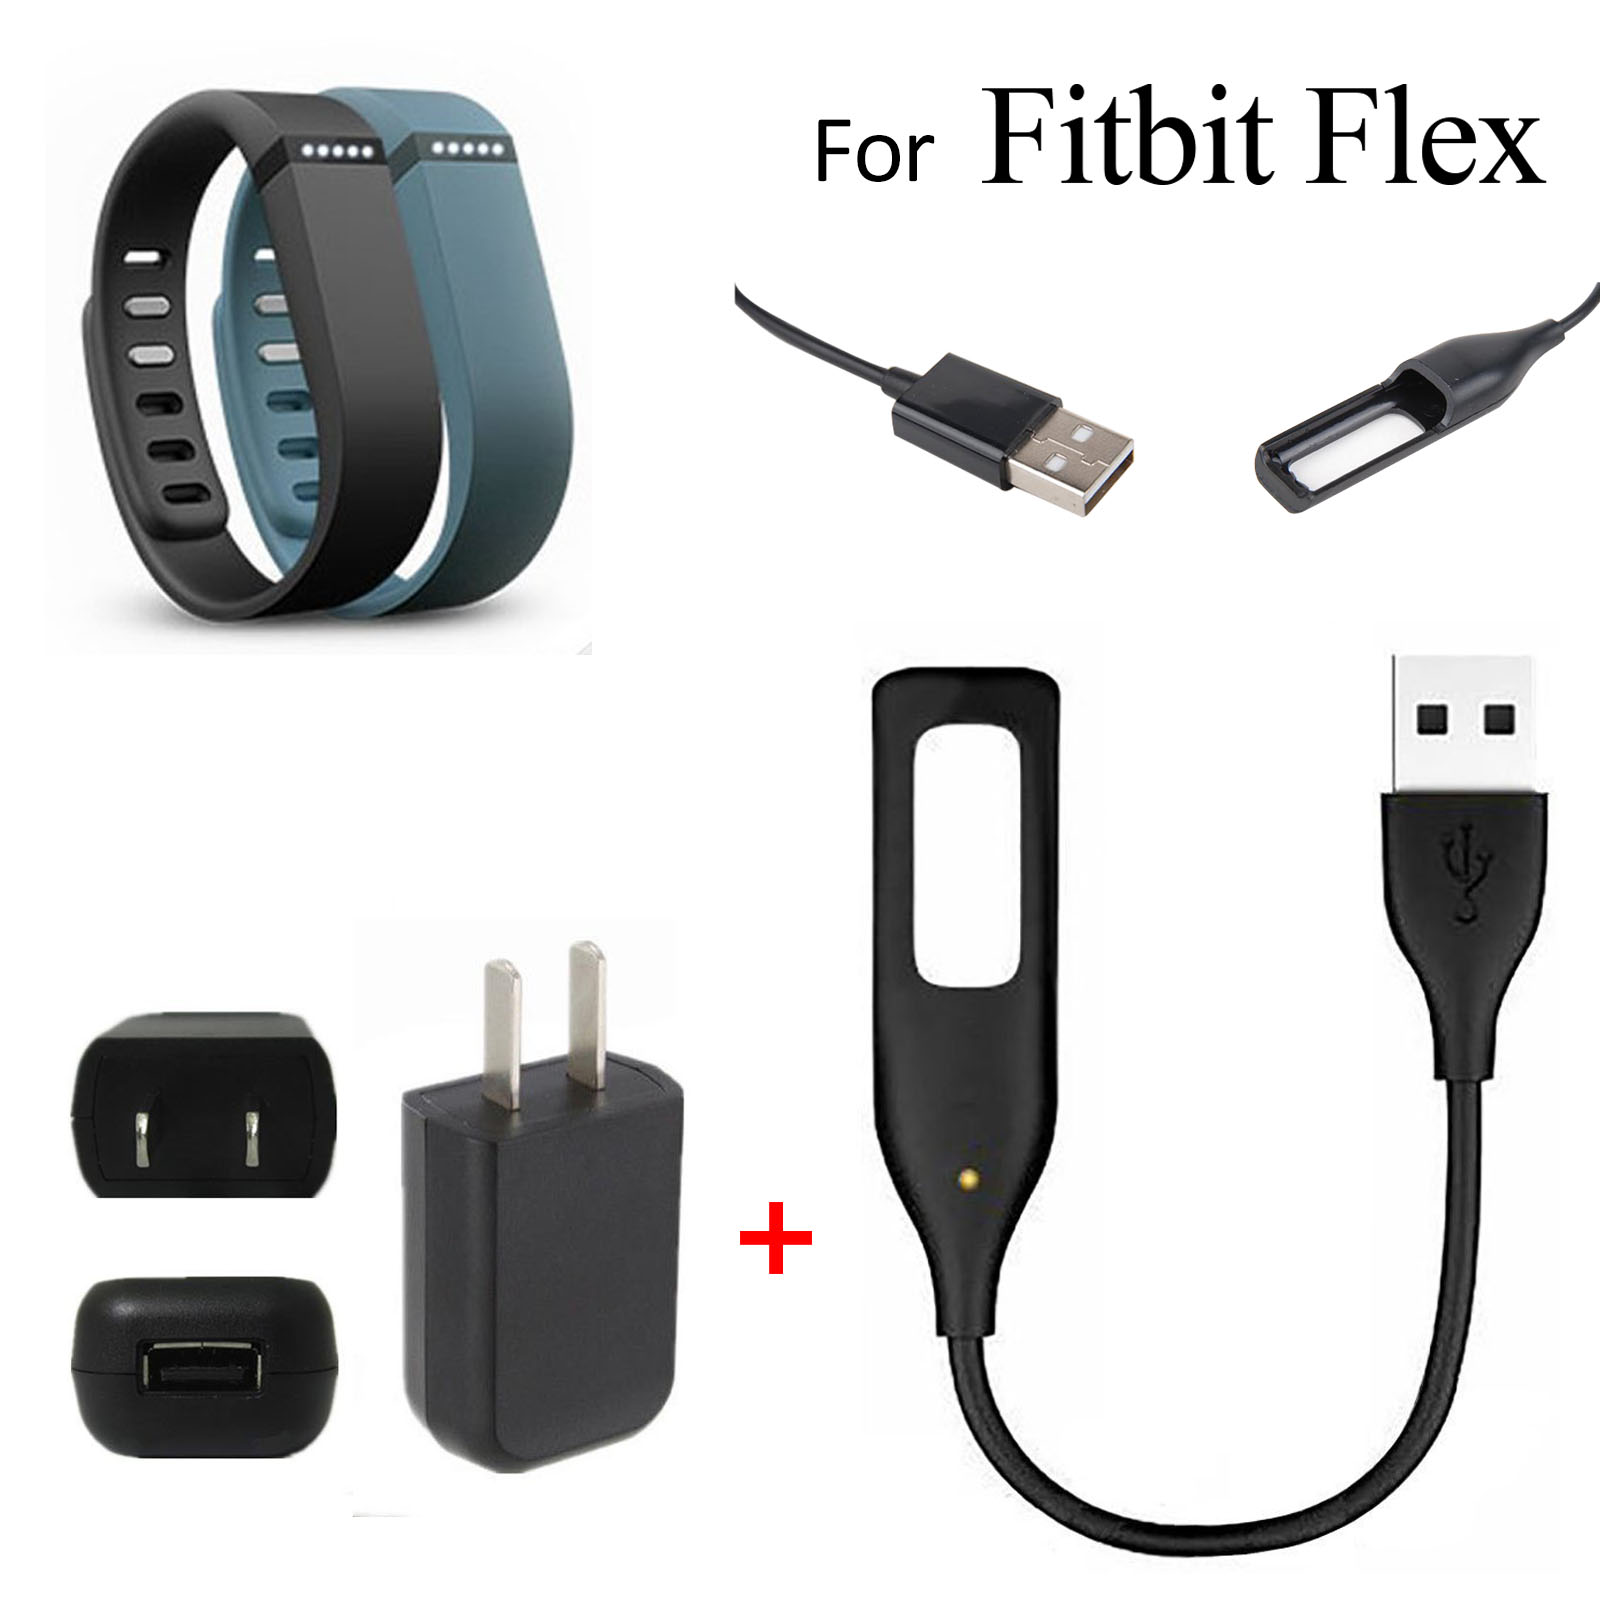 USB AC Wall Charger+USB Charging Cable for Fitbit Flex Wireless Activity Sleep Wristband, EEEKit 2in1 Kit